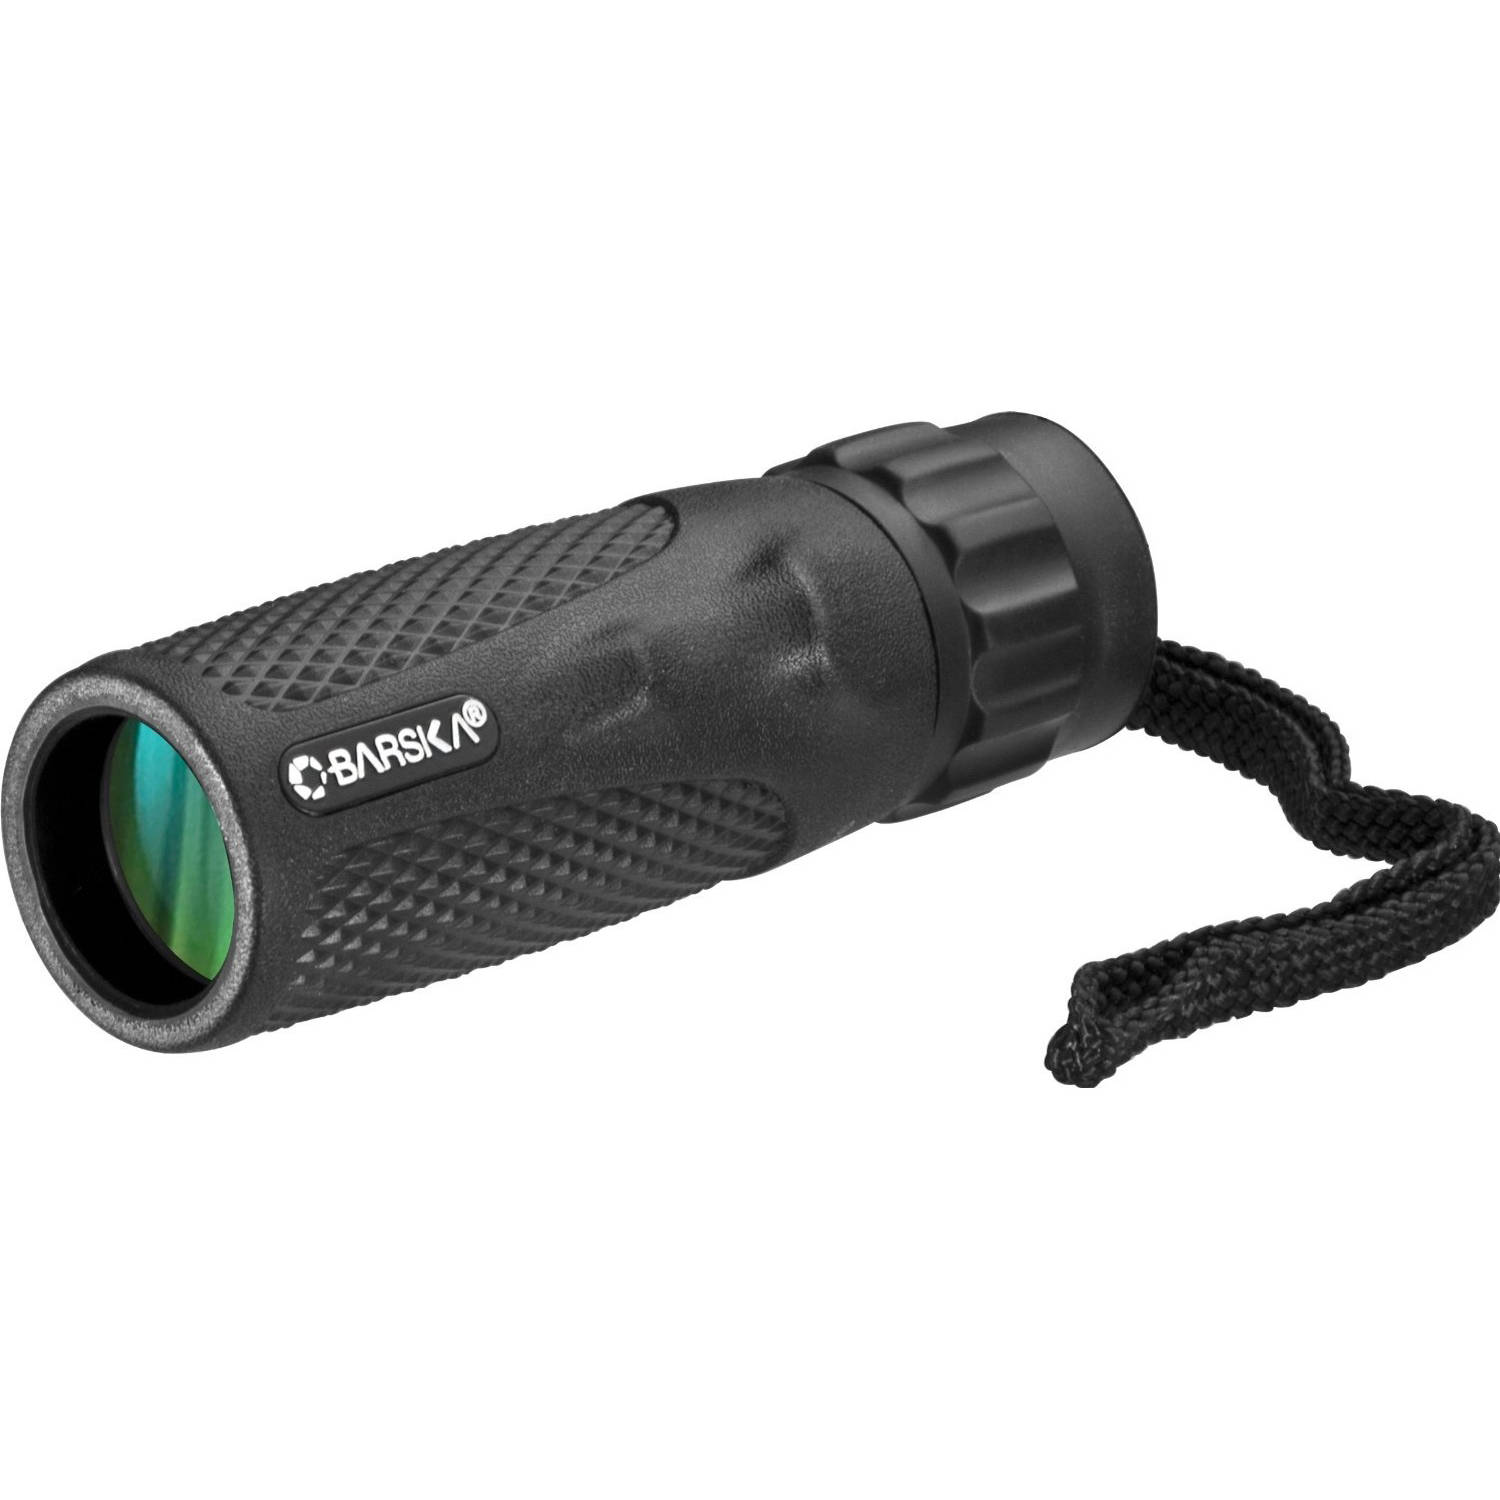 Barska 10x25 Waterproof Blackhawk Monocular with Carrying Case